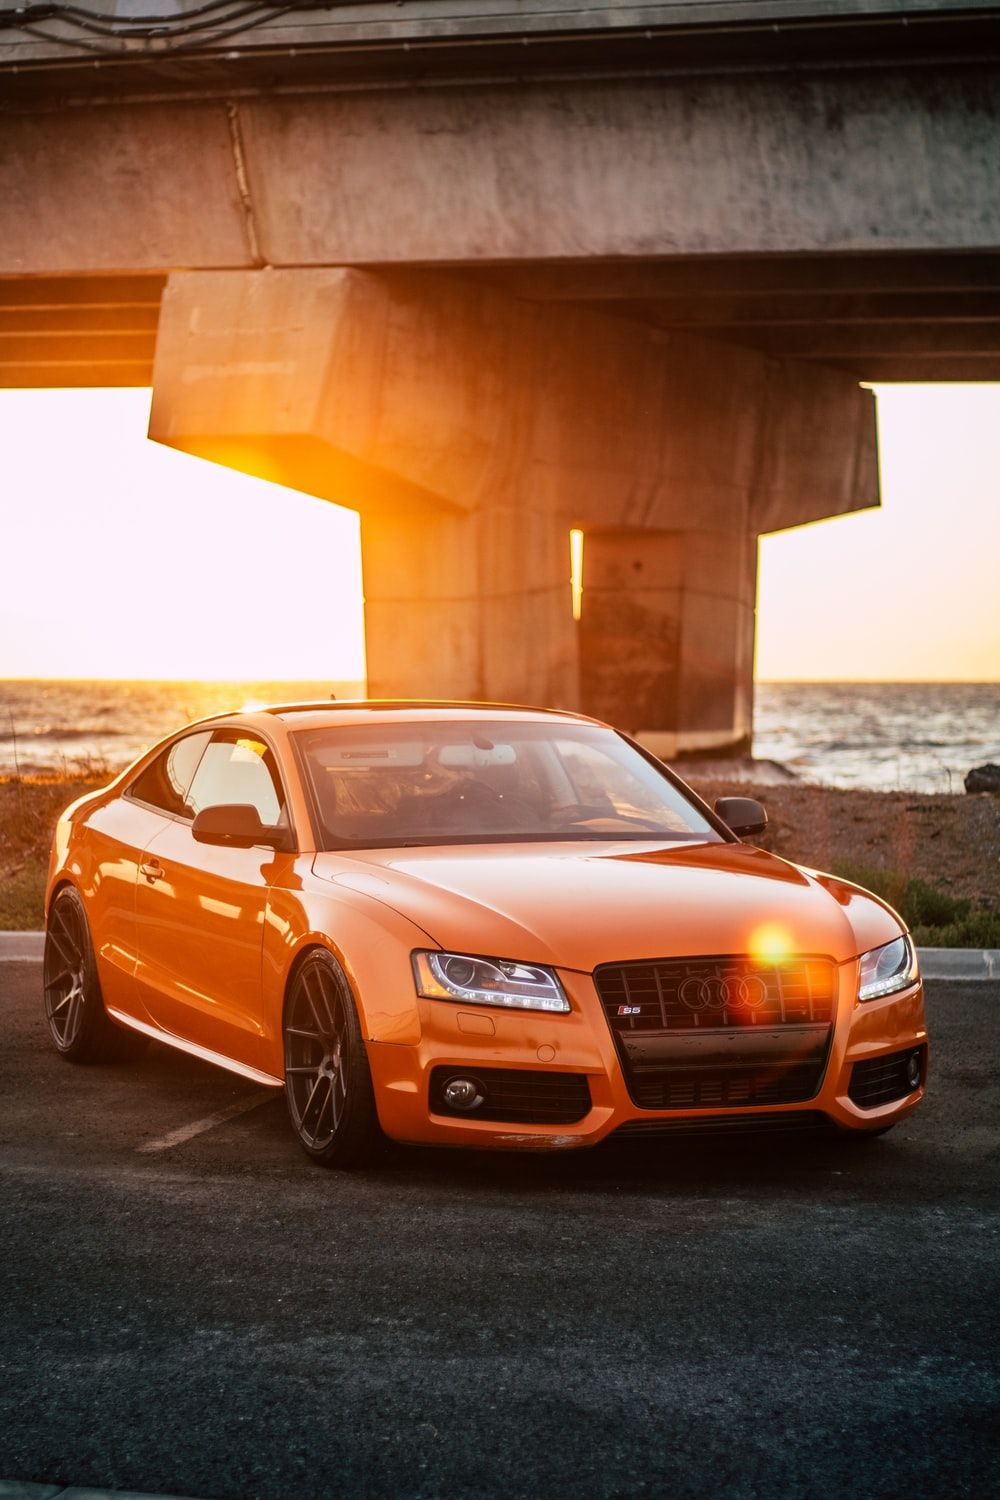 New Car Hd Wallpapers Top Free New Car Hd Backgrounds Wallpaperaccess